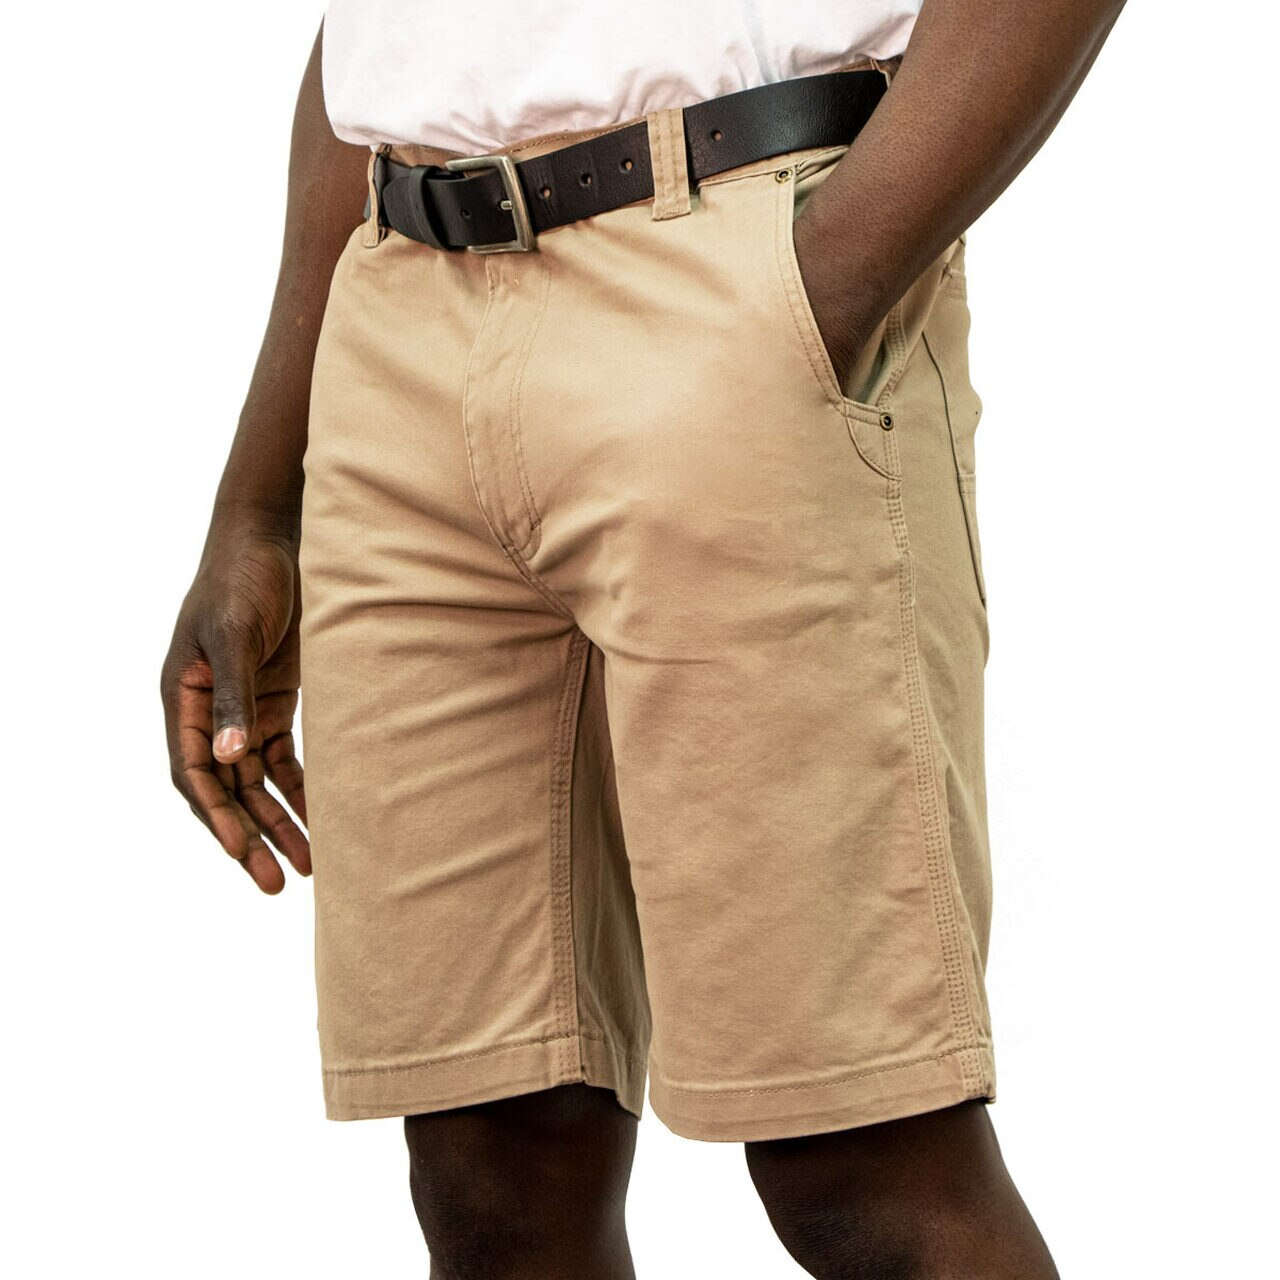 'KEY' Men's Flex Foreman Short - Khaki